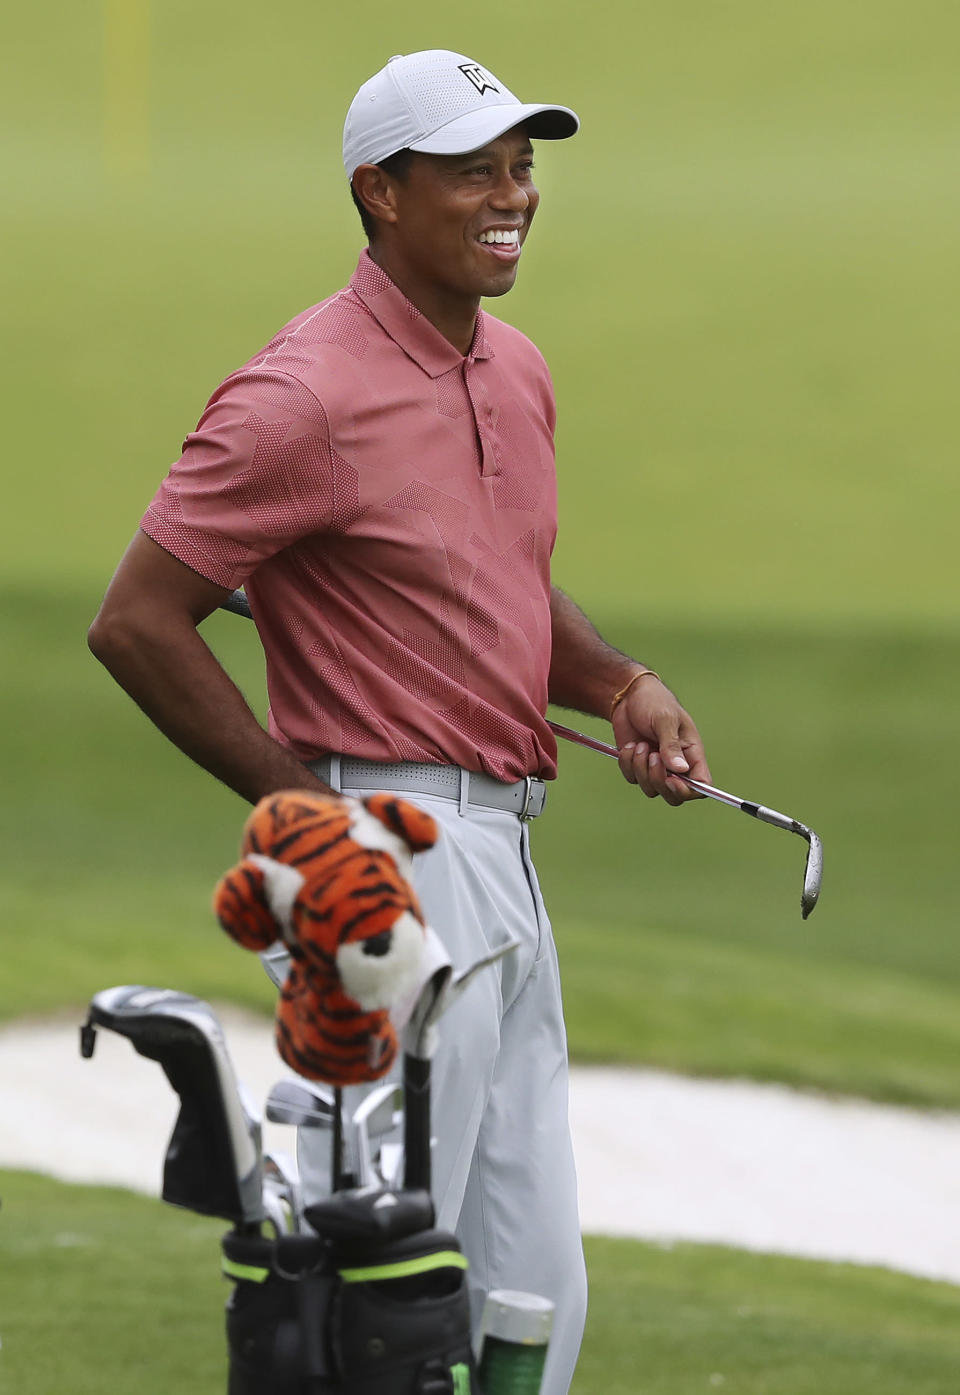 Tiger Woods smiles on the practice range at Augusta National Golf Club in Augusta, Ga., Tuesday, Nov. 10, 2020. The Masters golf tournament begins Thursday in Augusta. (Curtis Compton/Atlanta Journal-Constitution via AP)